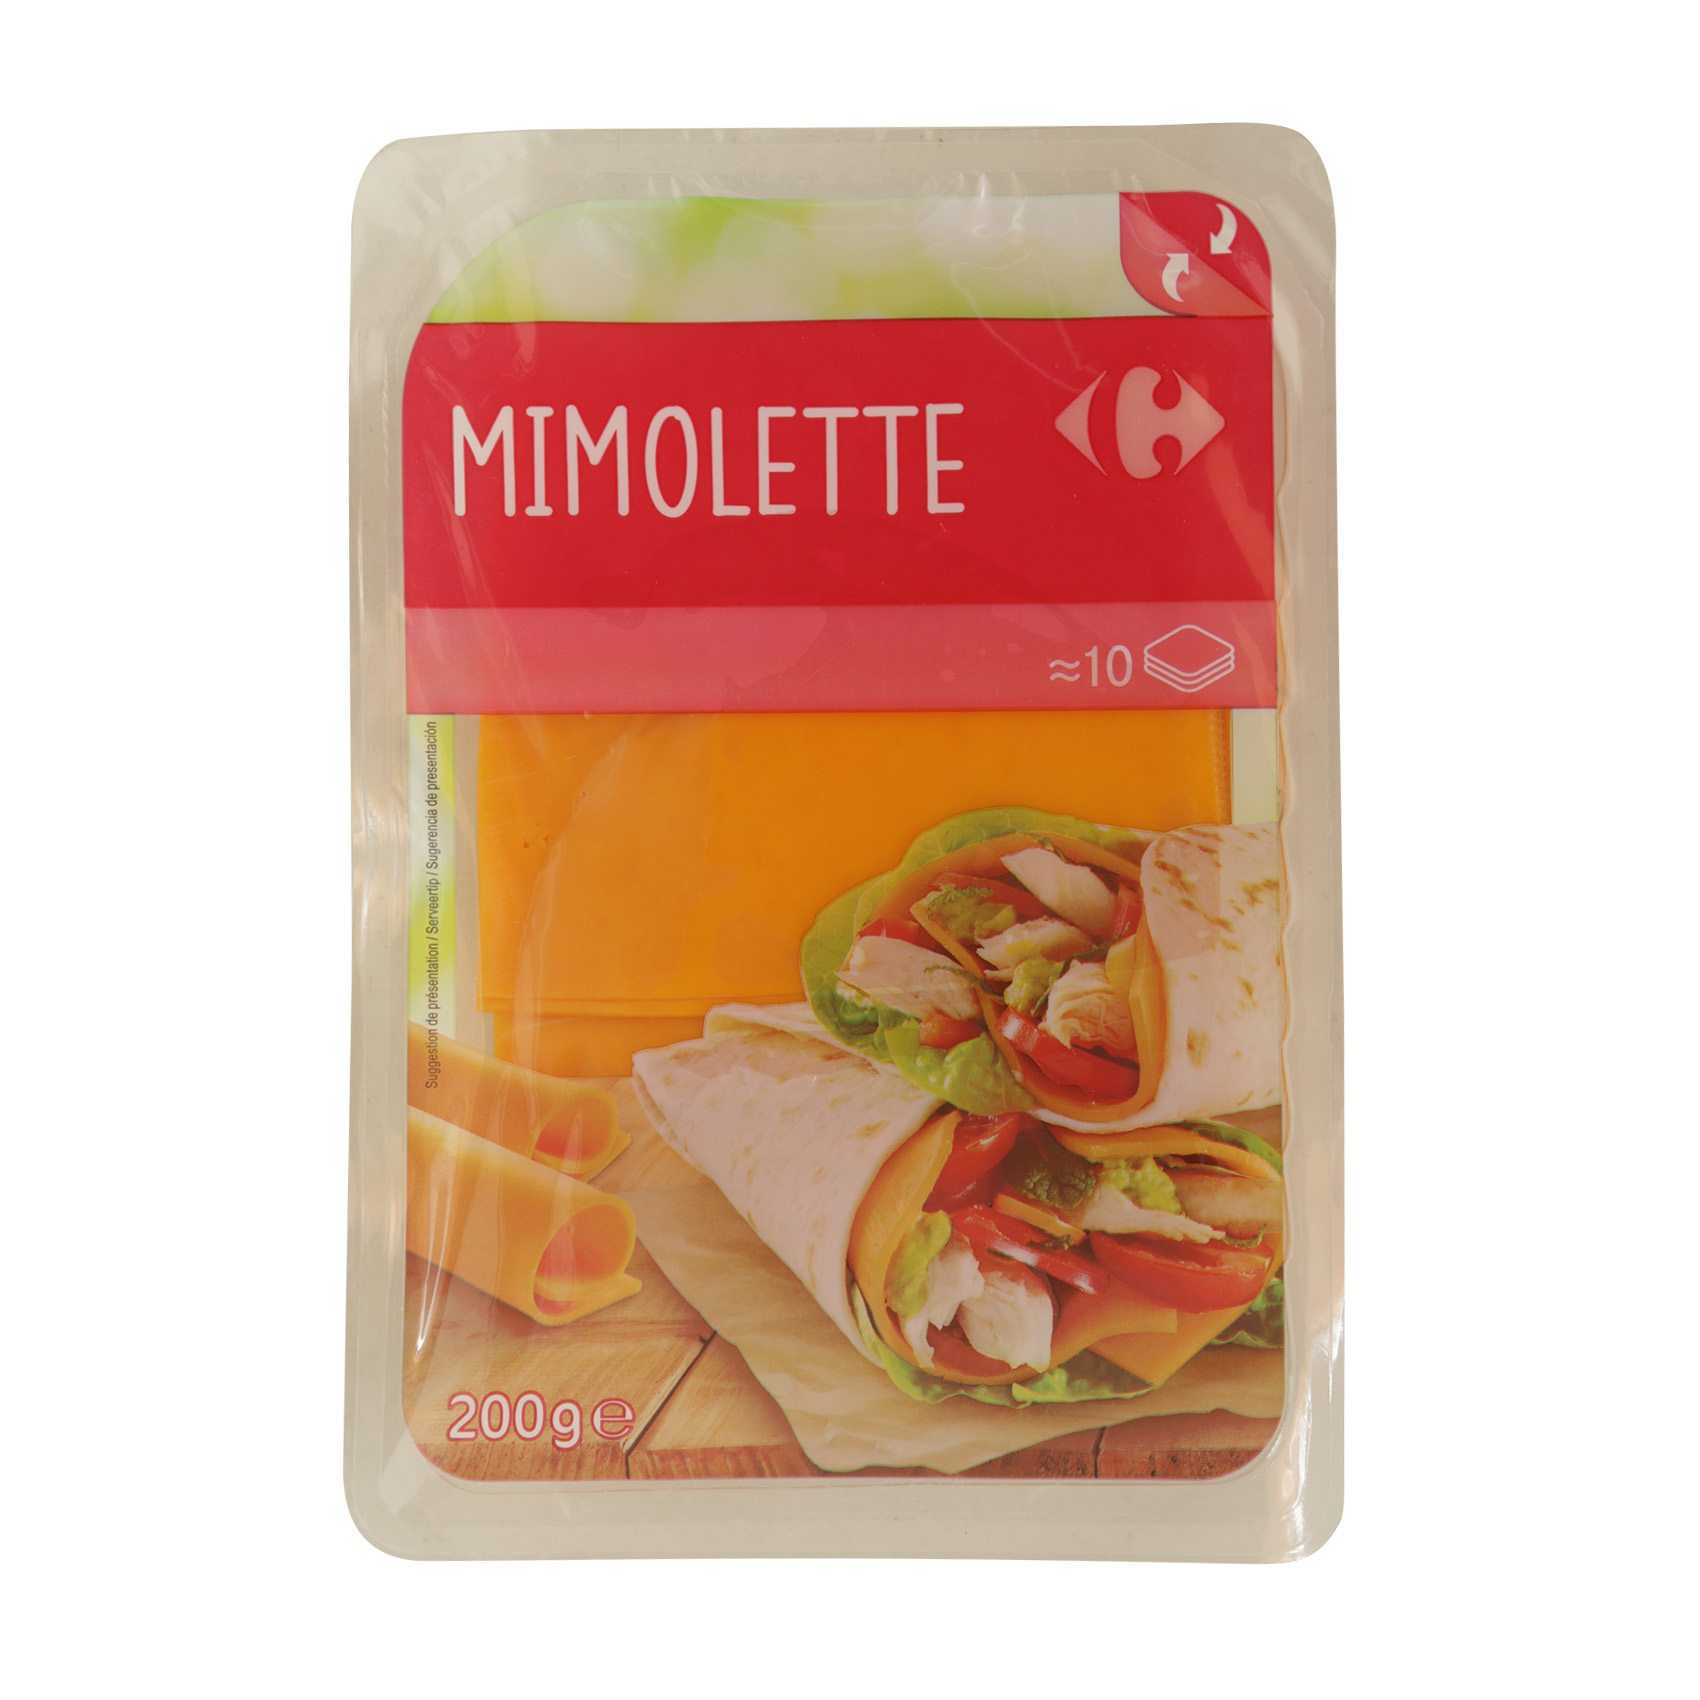 CRF MIMOLETTE SLICES 200G